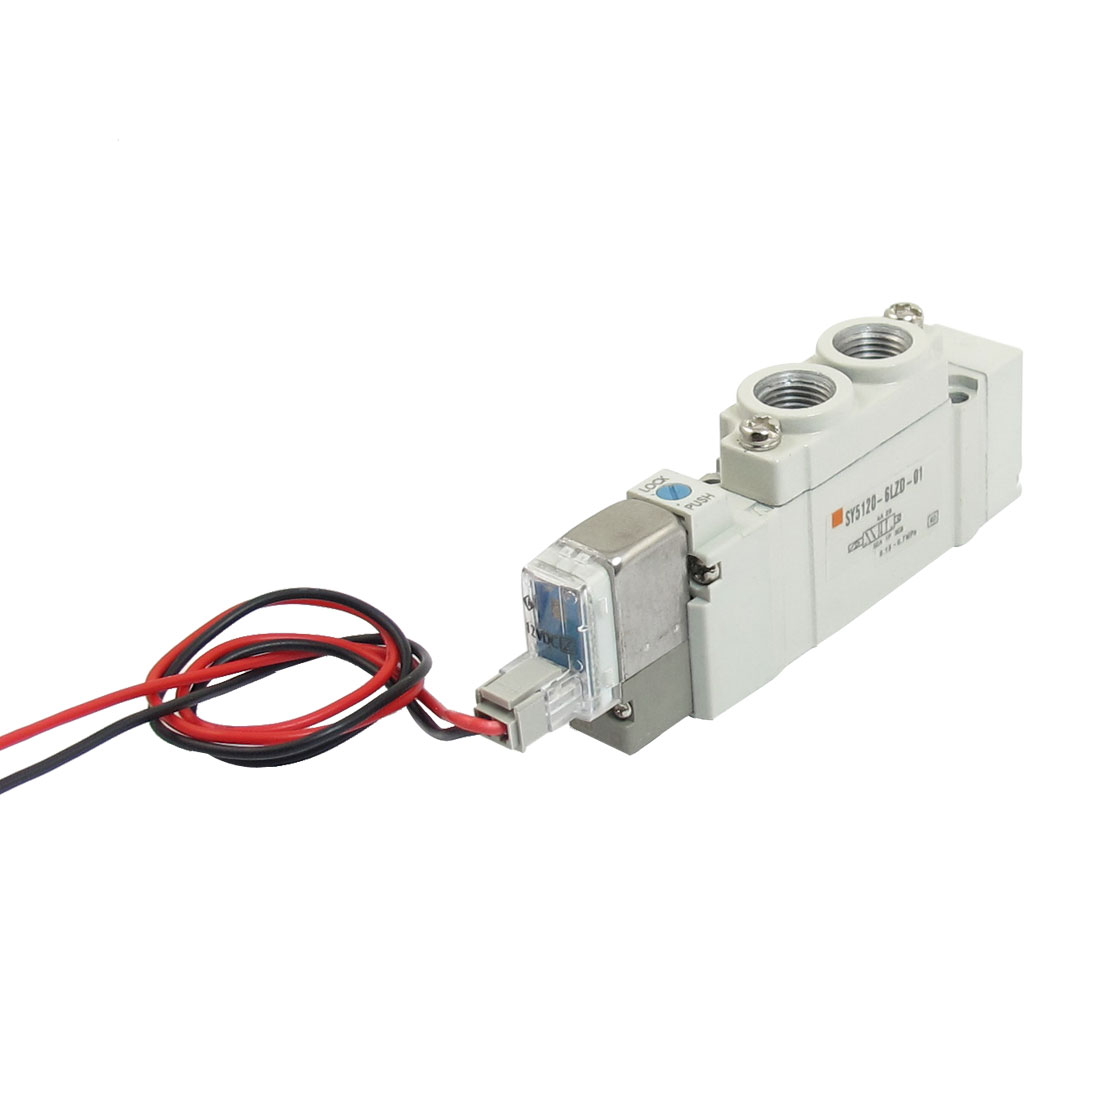 DC 12V 2 Position 5-way Electric Pneumatic Power Control Solenoid Valve